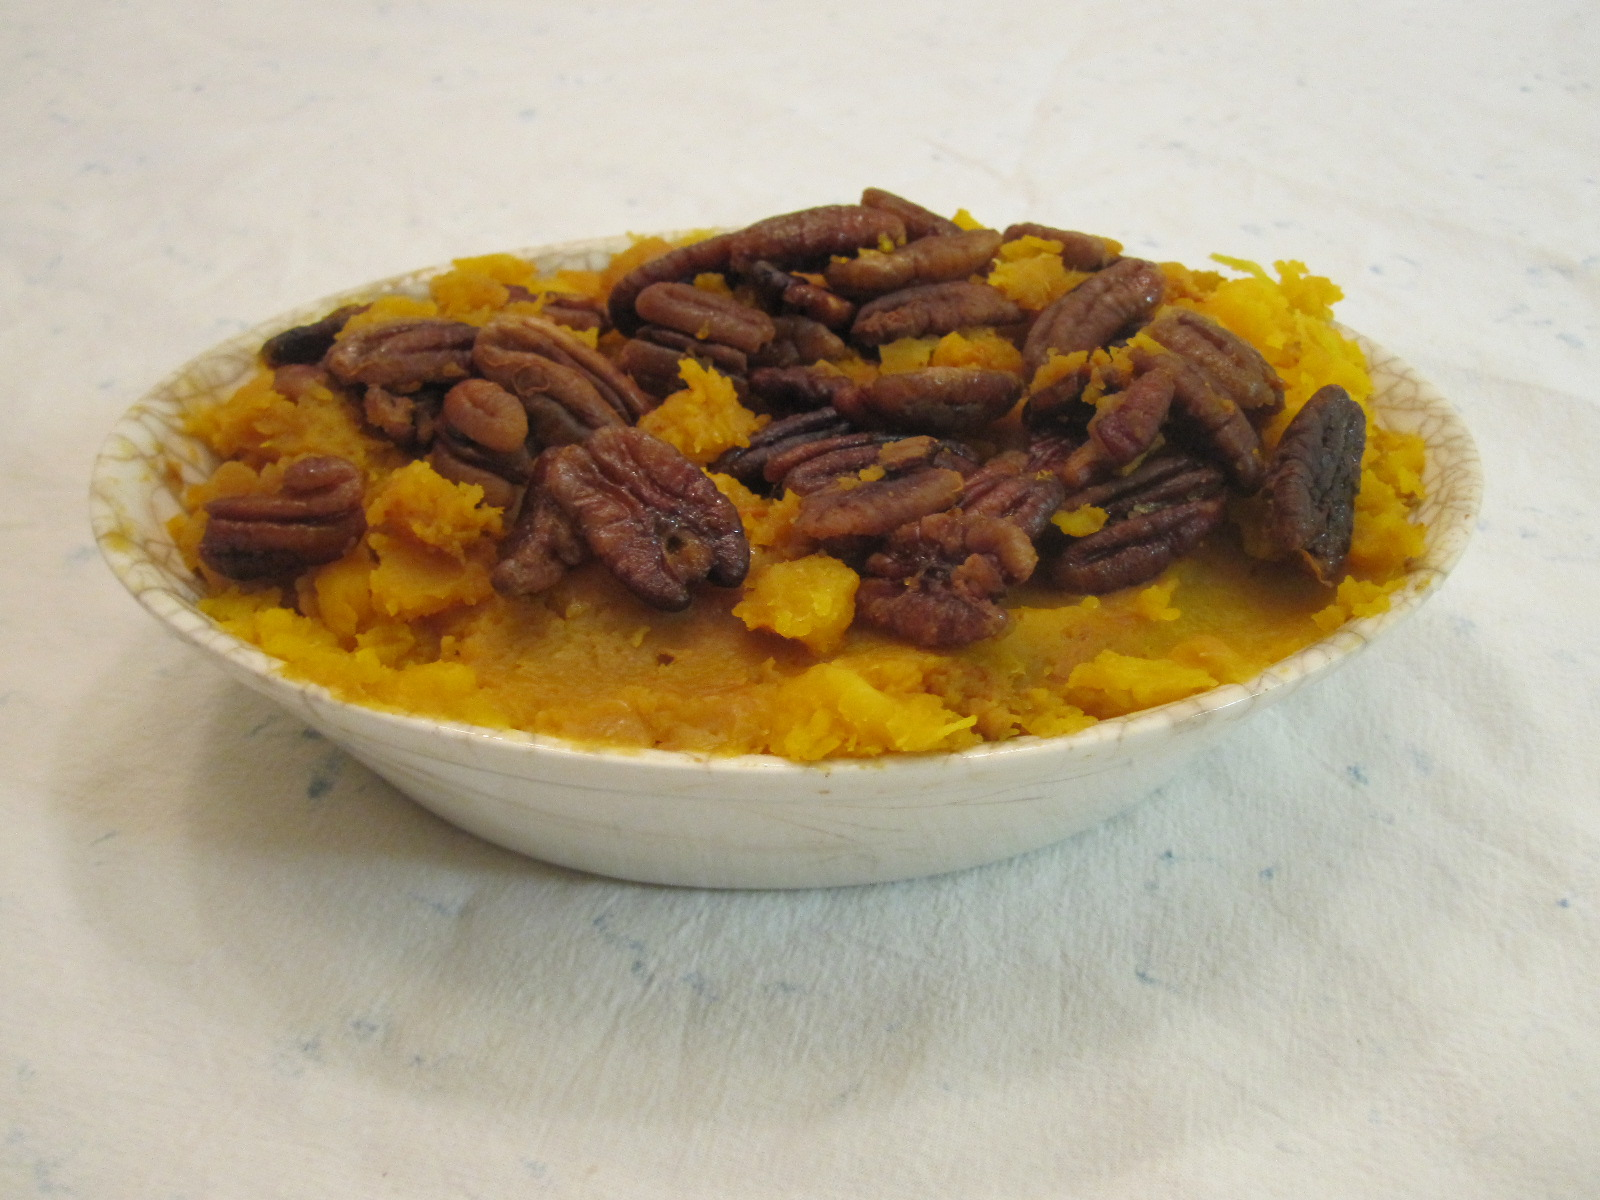 Vegan Recipe - Whipped Butternut Squash with Cloves and Pecans